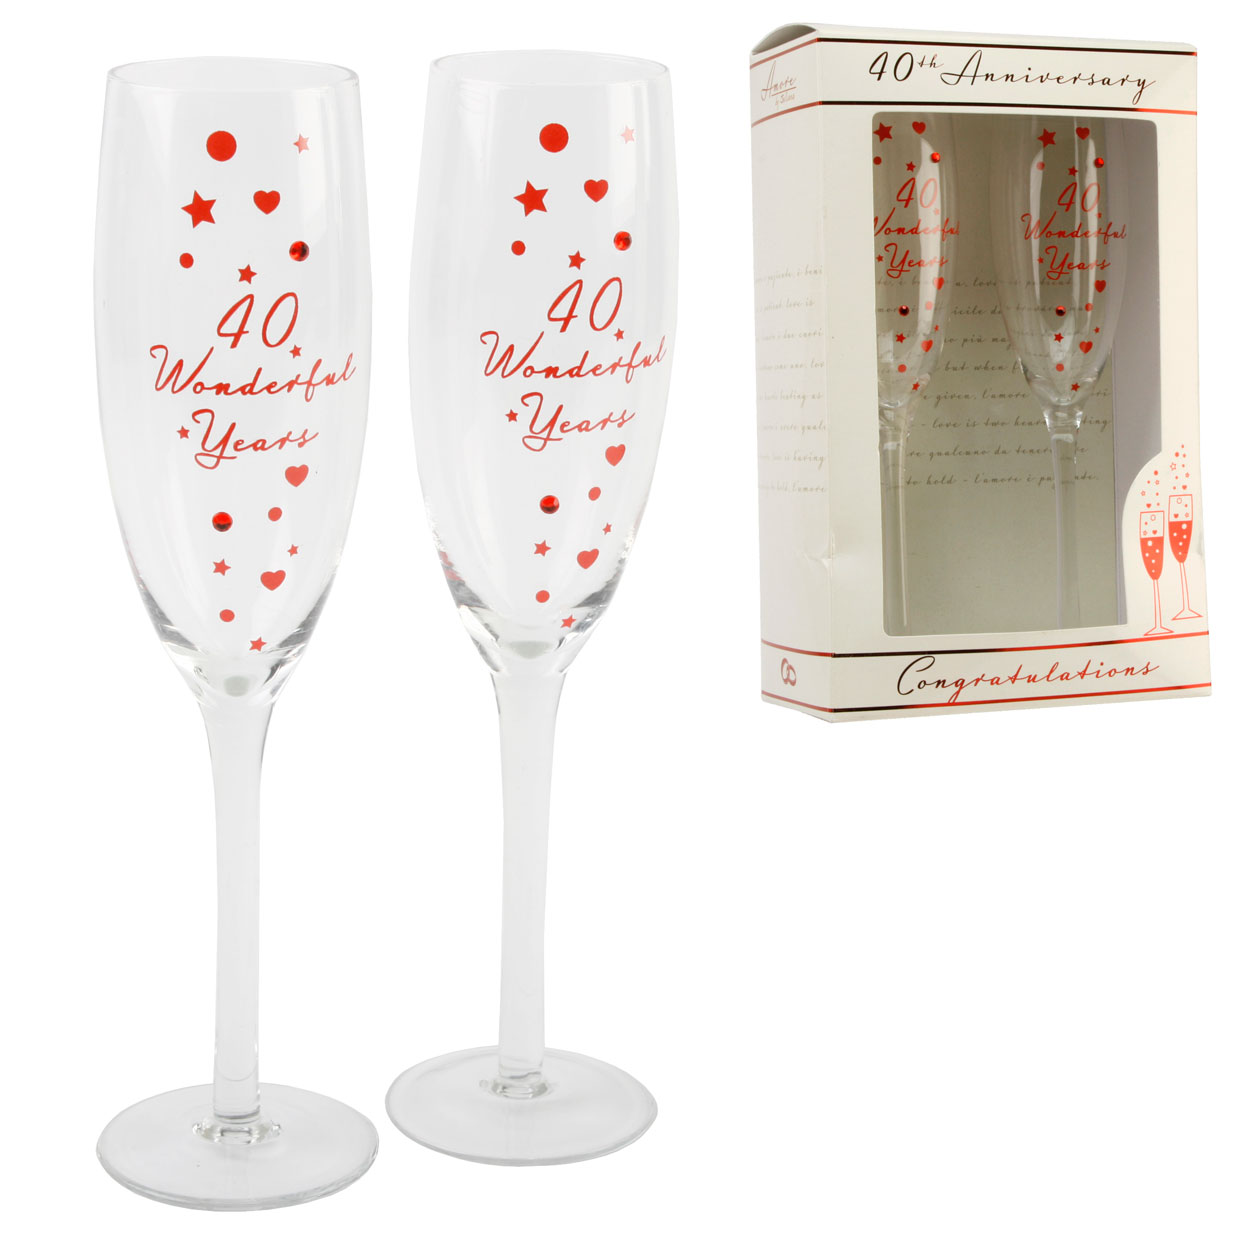 ... 40th Ruby Anniversary Champagne Flutes Glasses Wedding Gift Set eBay